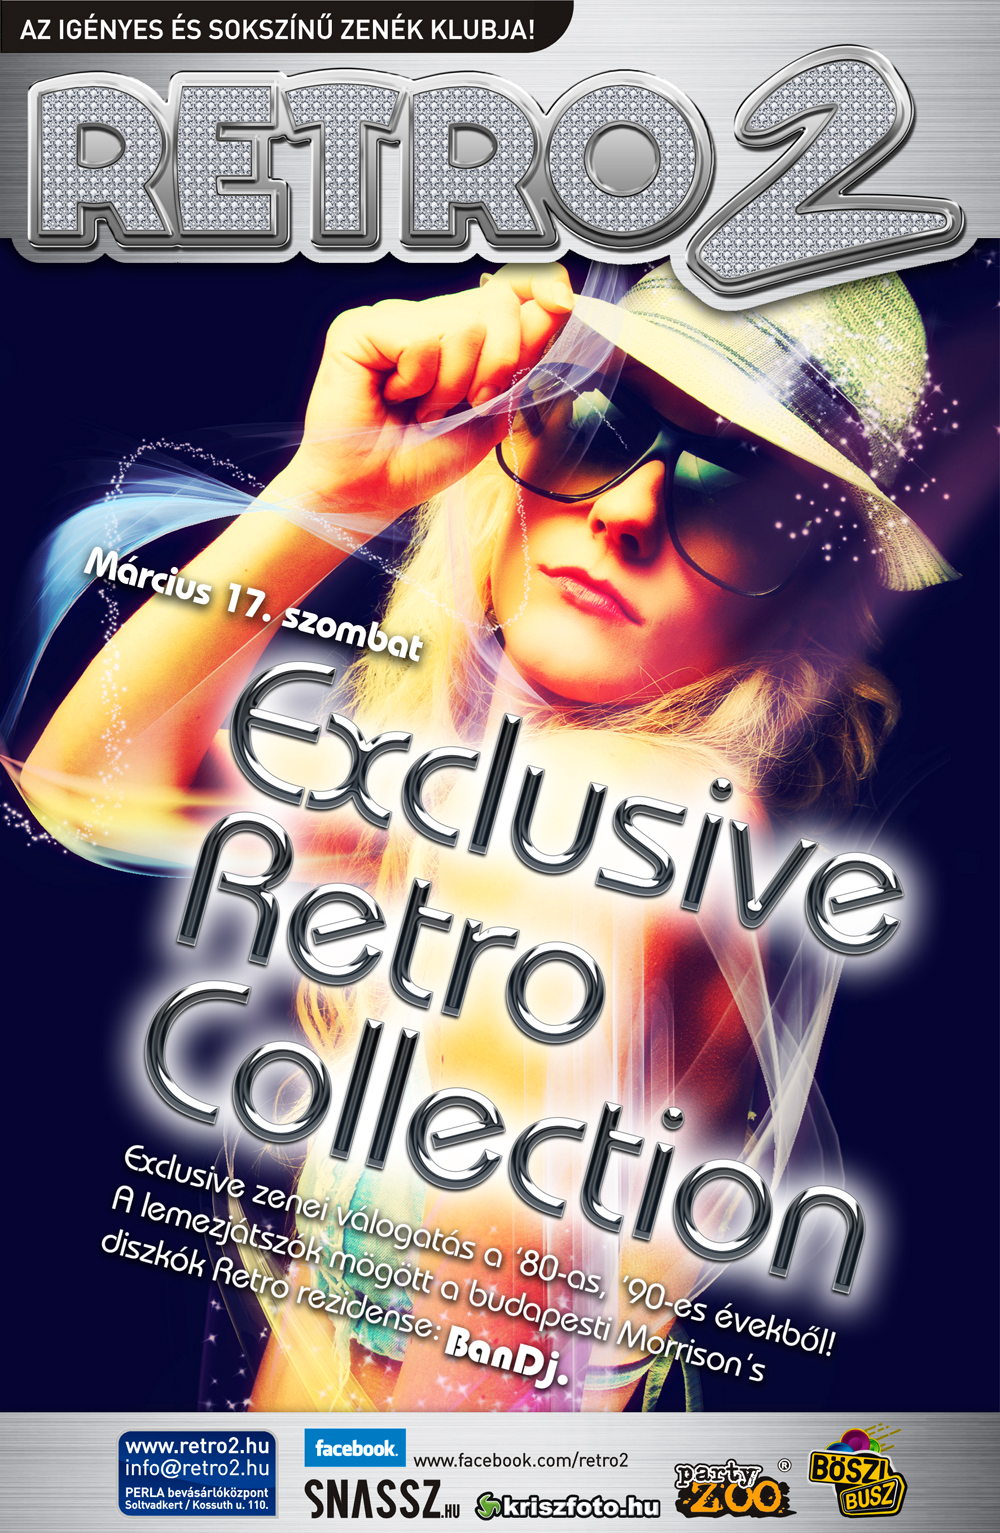 Exclusive Retro Collection